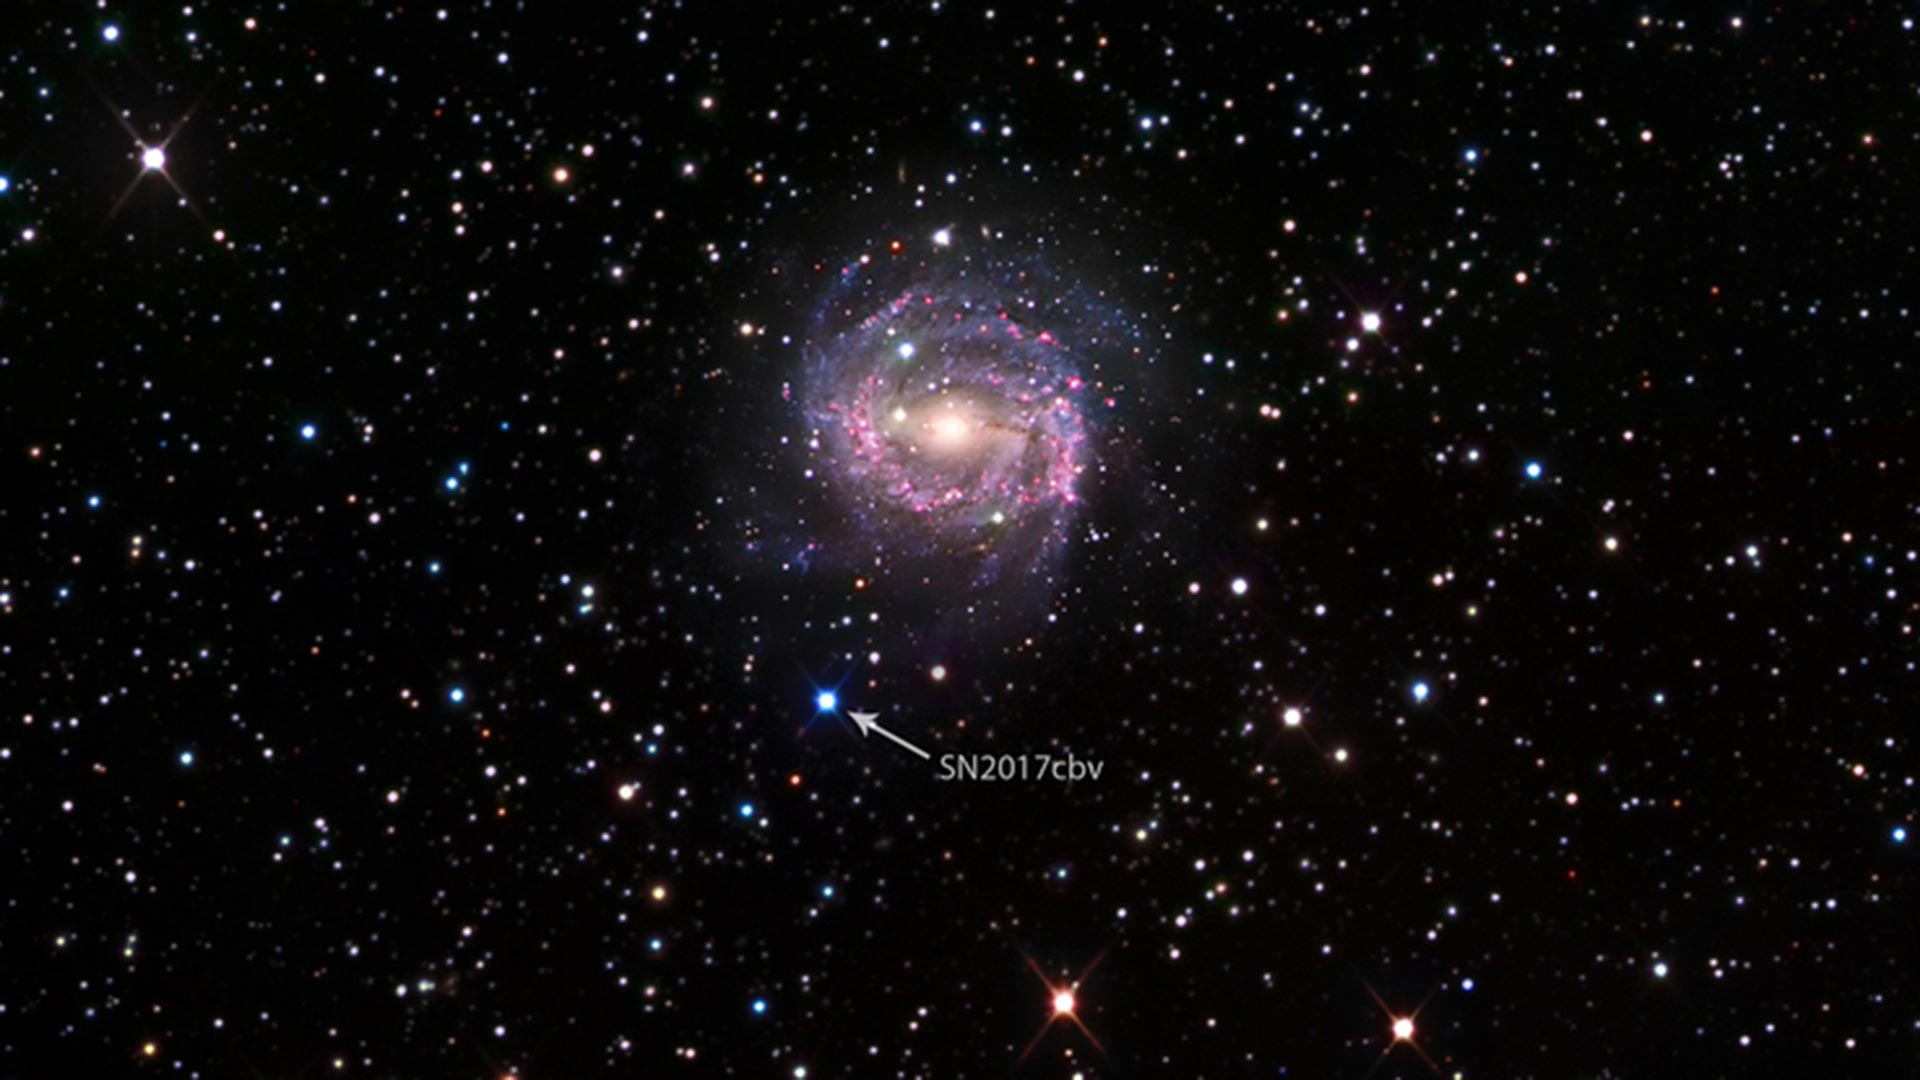 UA astronomer David Sand discovered supernova SN 2017cbv in March 2017 when he was with the Las Cumbres Observatory in California.